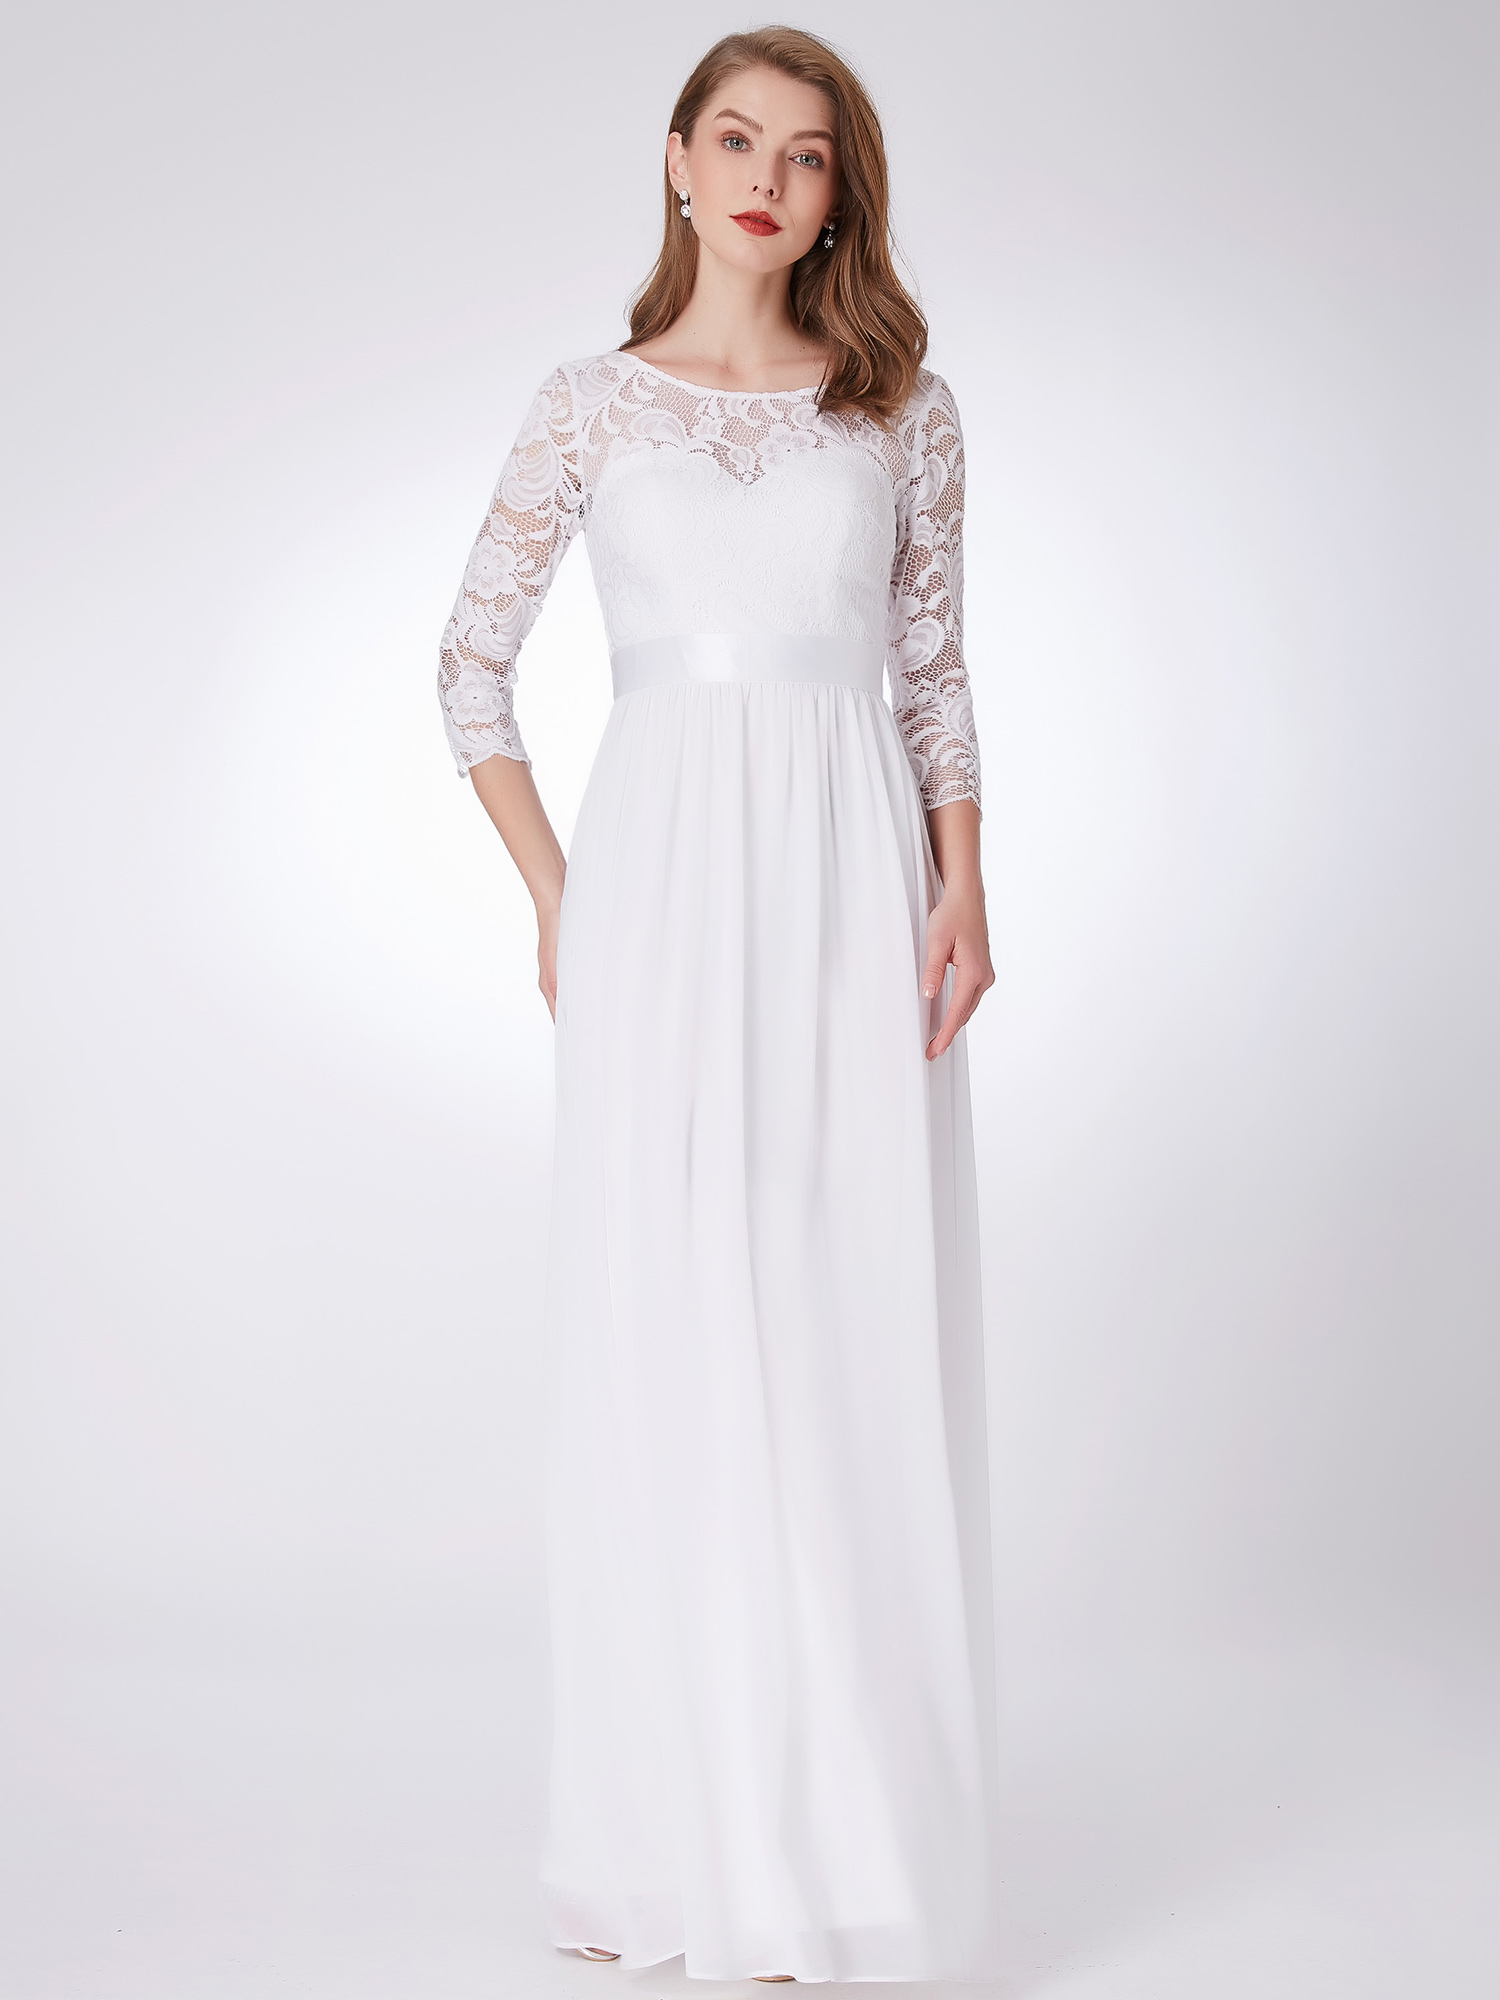 Long Lace Wedding Bridesmaid Pageant Evening Dresses 07412 White ...